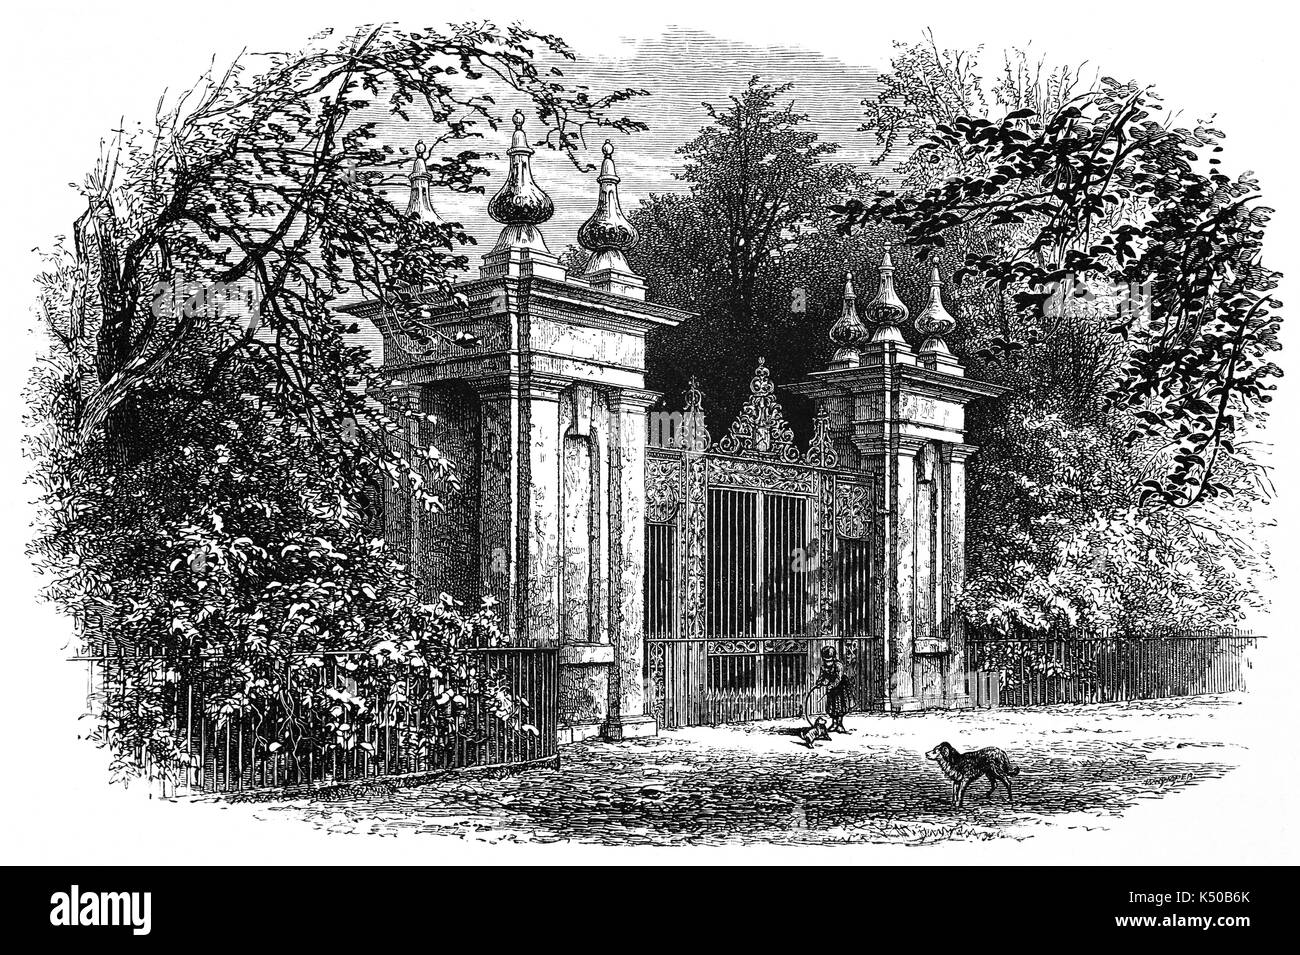 1870: The gateway to Trinity College, possibly  dates to the 1680s when formal parts of the garden were laid out, Oxford University, England - Stock Image